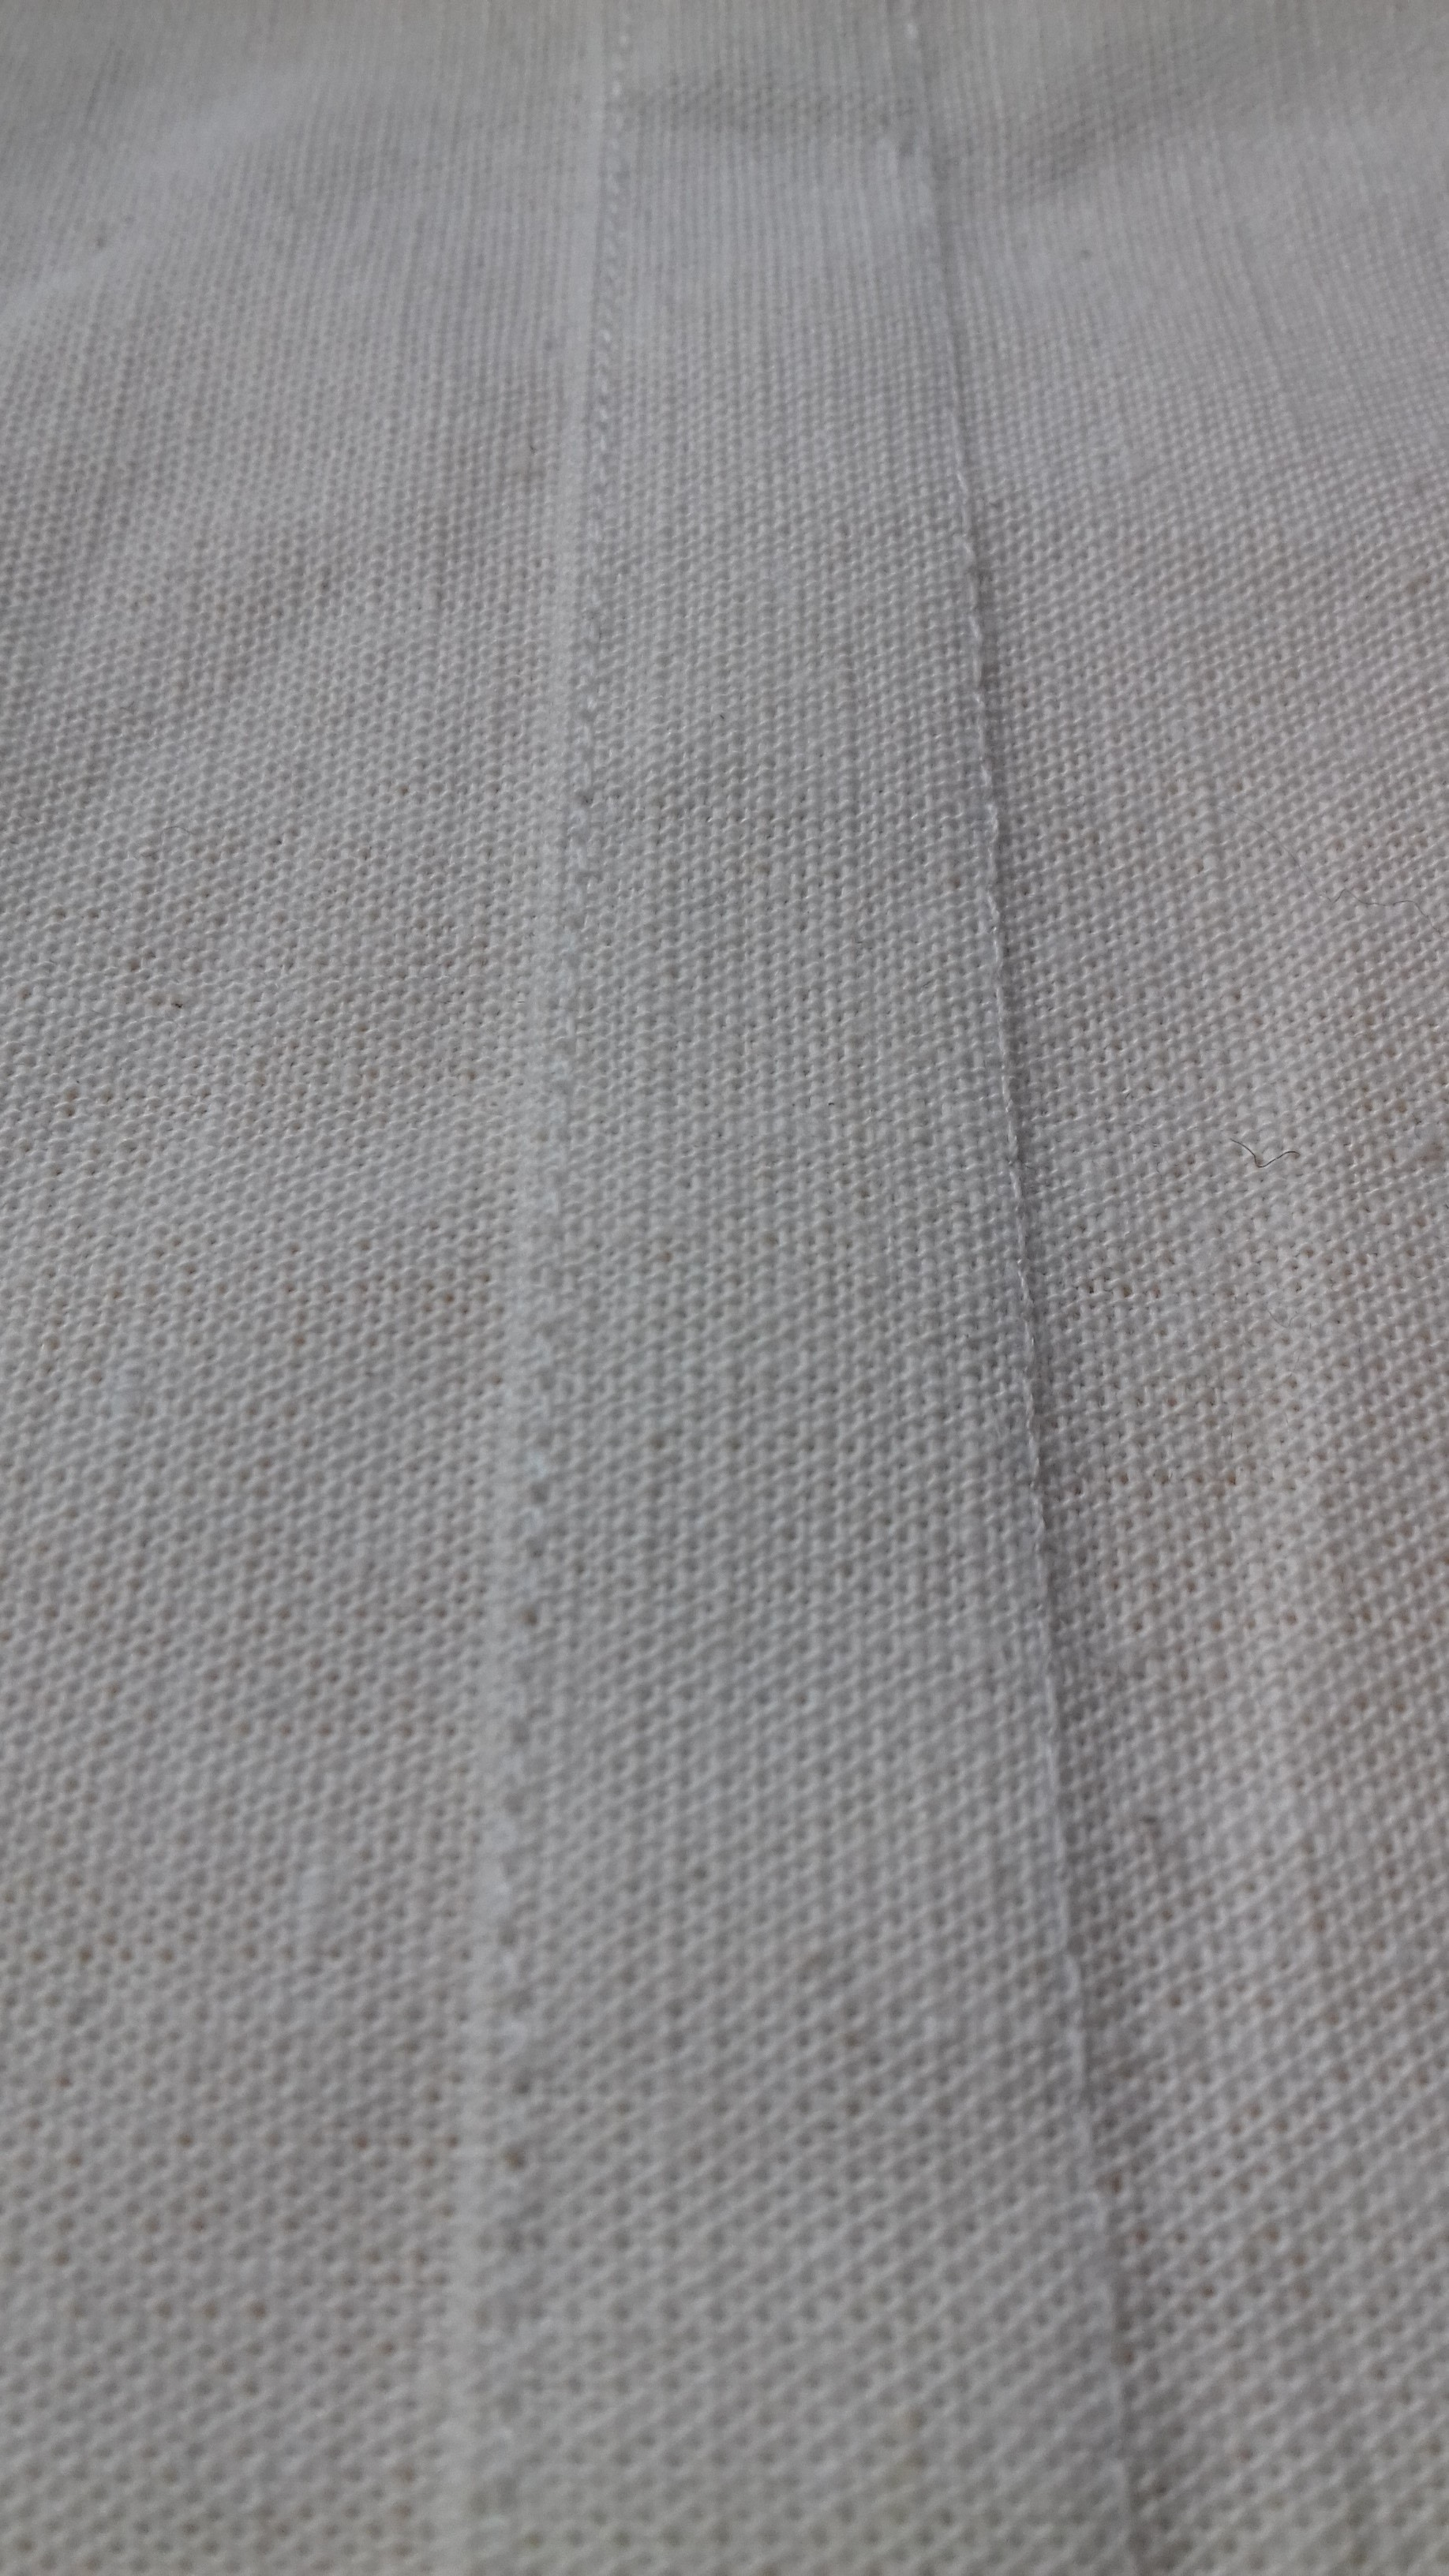 Flat Felled Seam · How To Sew A Seam · Sewing on Cut Out